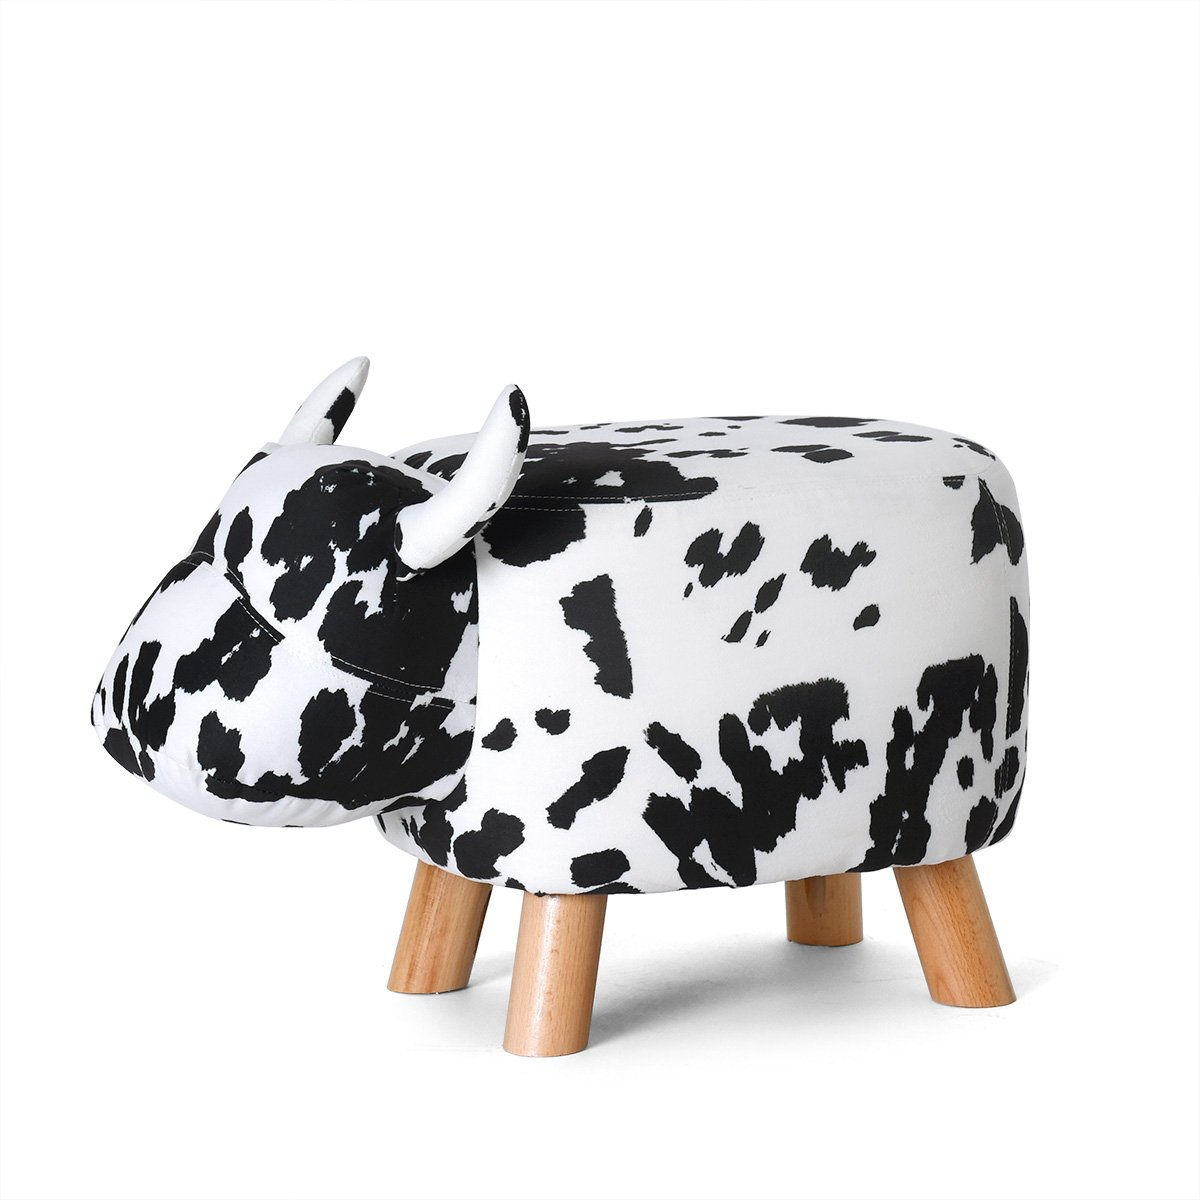 Fjfz Decorative Ottoman Stool Cow Figure Shoe-changing Bench for Kids Toy Living Room Furniture with 4 Beech Wood Legs and Leather Cover, 24 X 13, Black and White